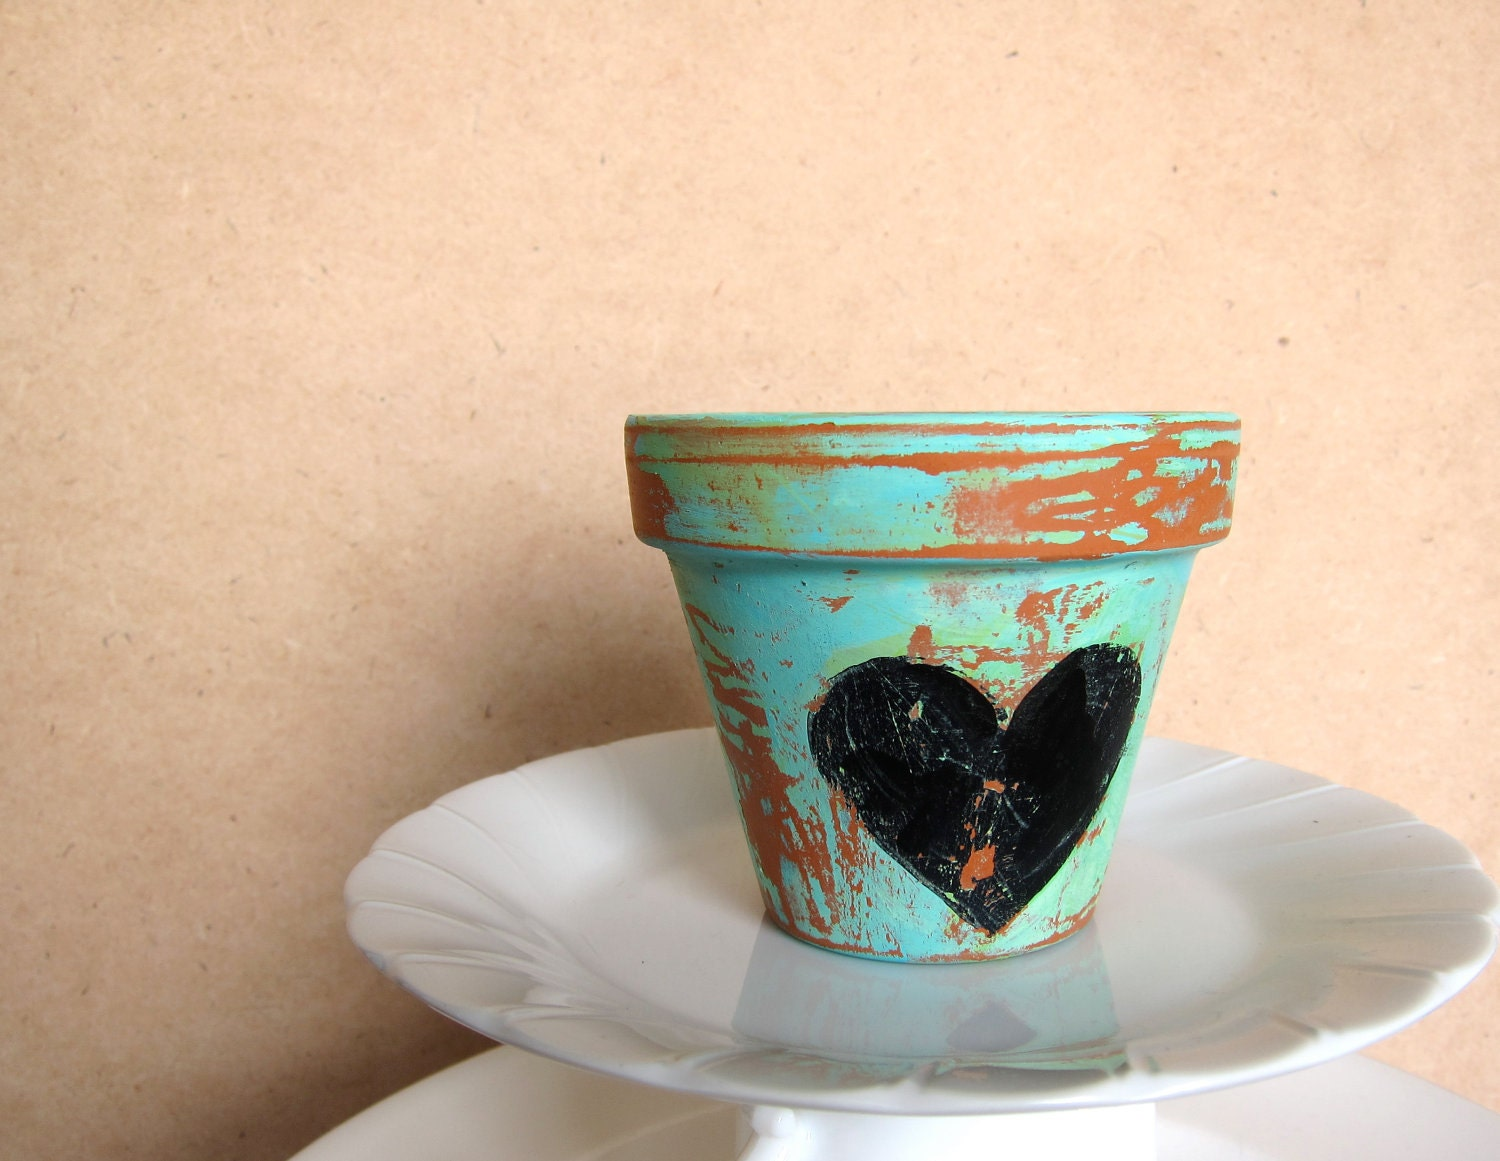 Planter pot - black heart - aqua mint green terra-cotta orange - distressed aged shabby chic rustic - Mothers Day- garden decor